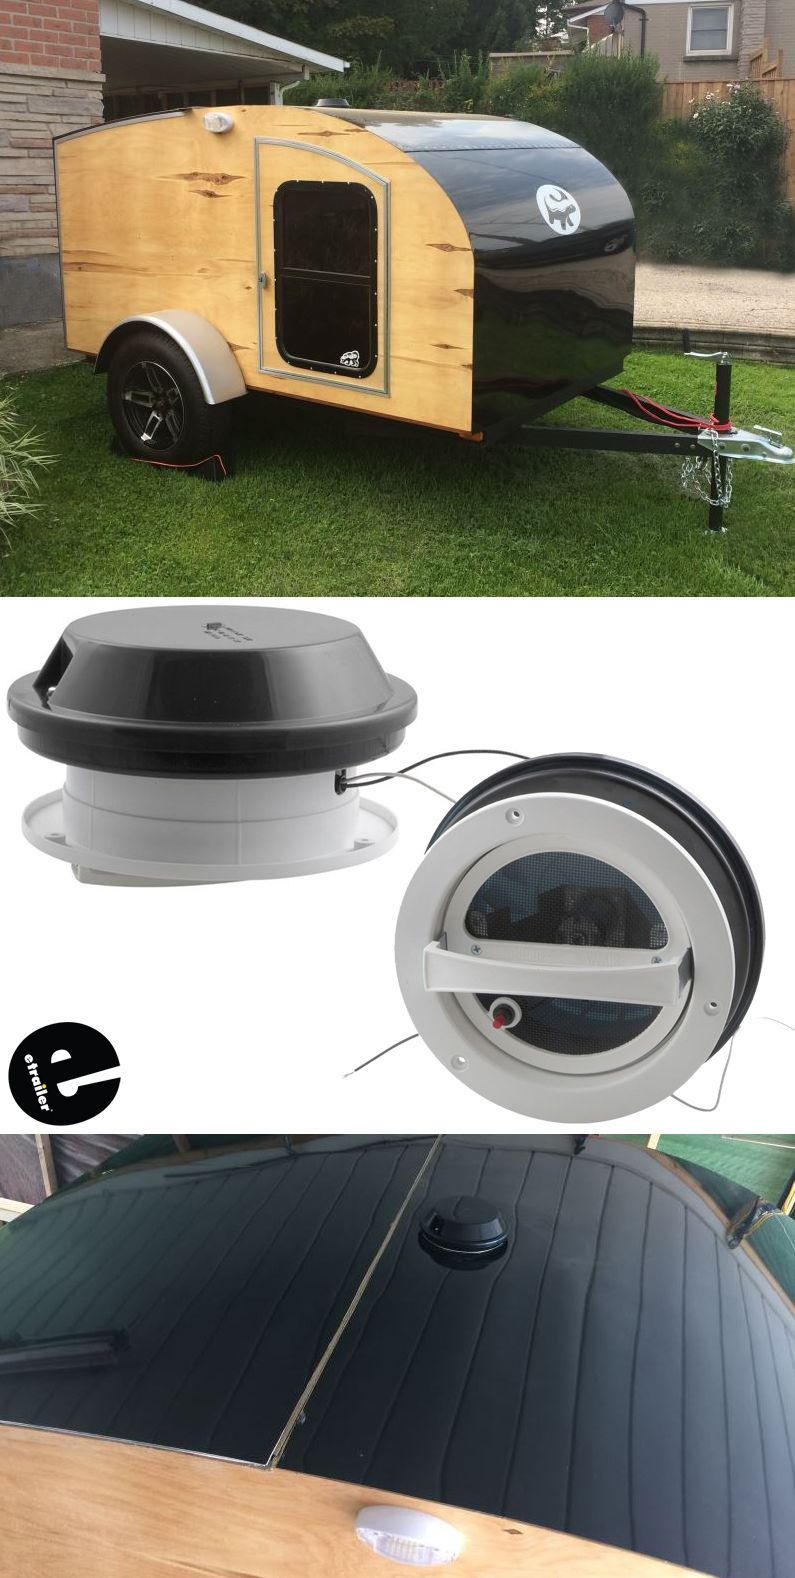 Ventline Vanair Trailer Roof Vent W 12v Fan 6 1 4 Diameter Smoke Ventline Rv Vents And Fans Vp Teardrop Camper Teardrop Trailer Plans Teardrop Trailer